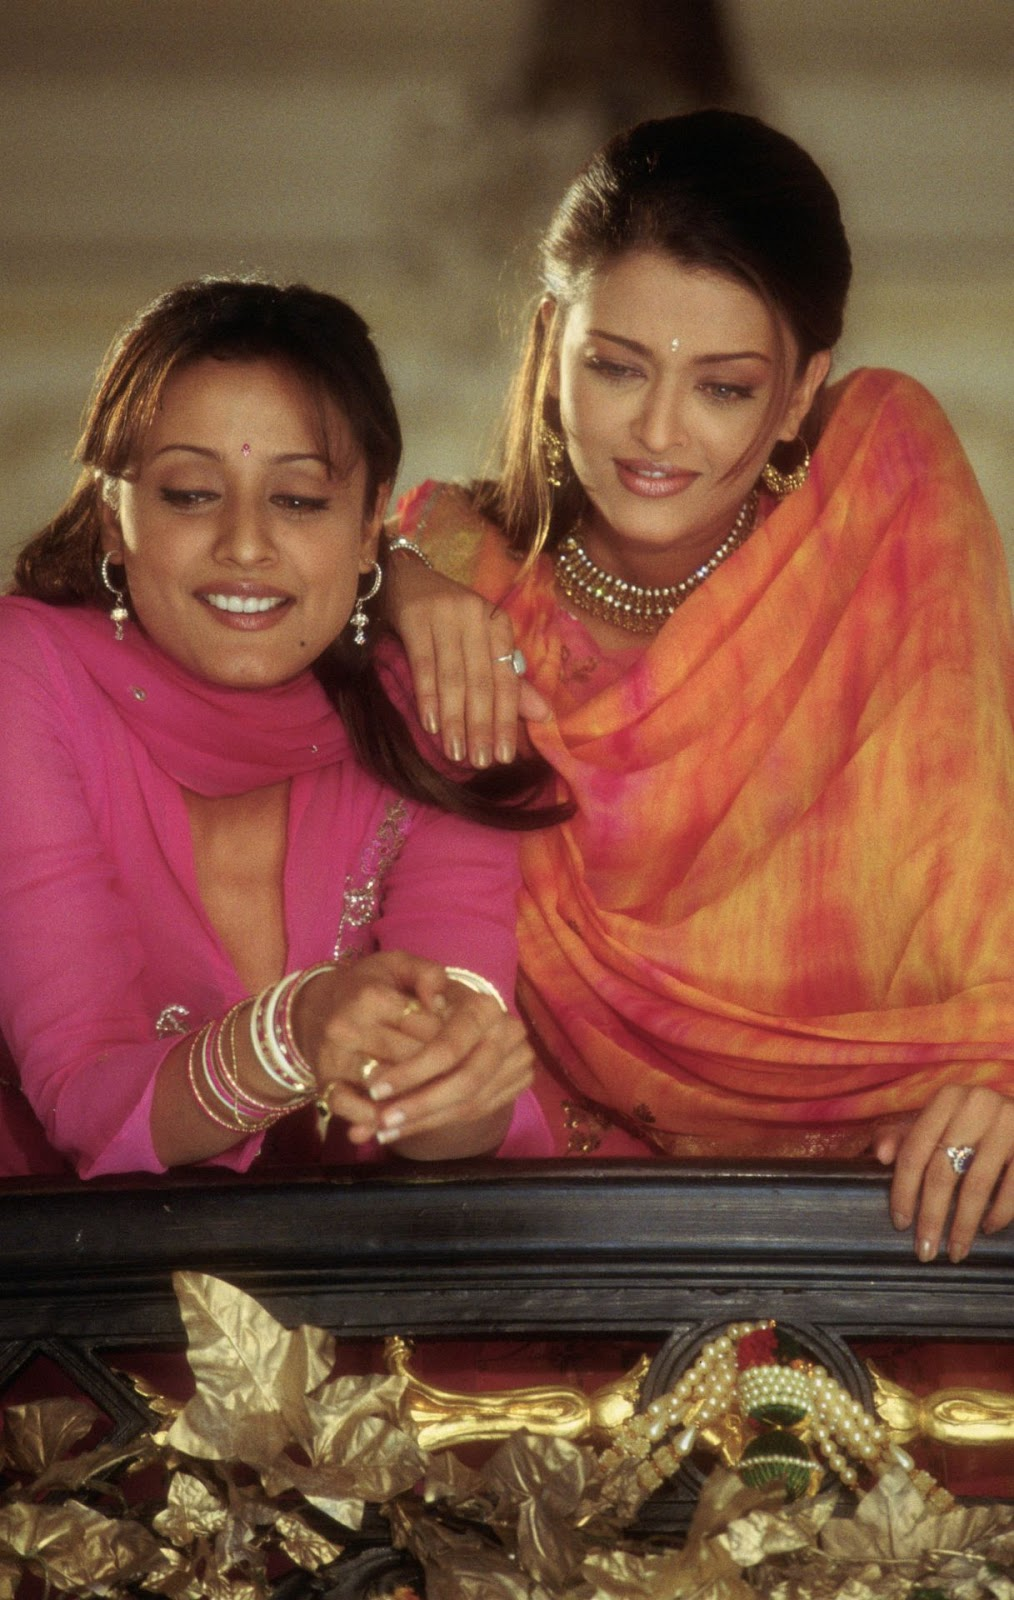 bride and prejudice - photo #14